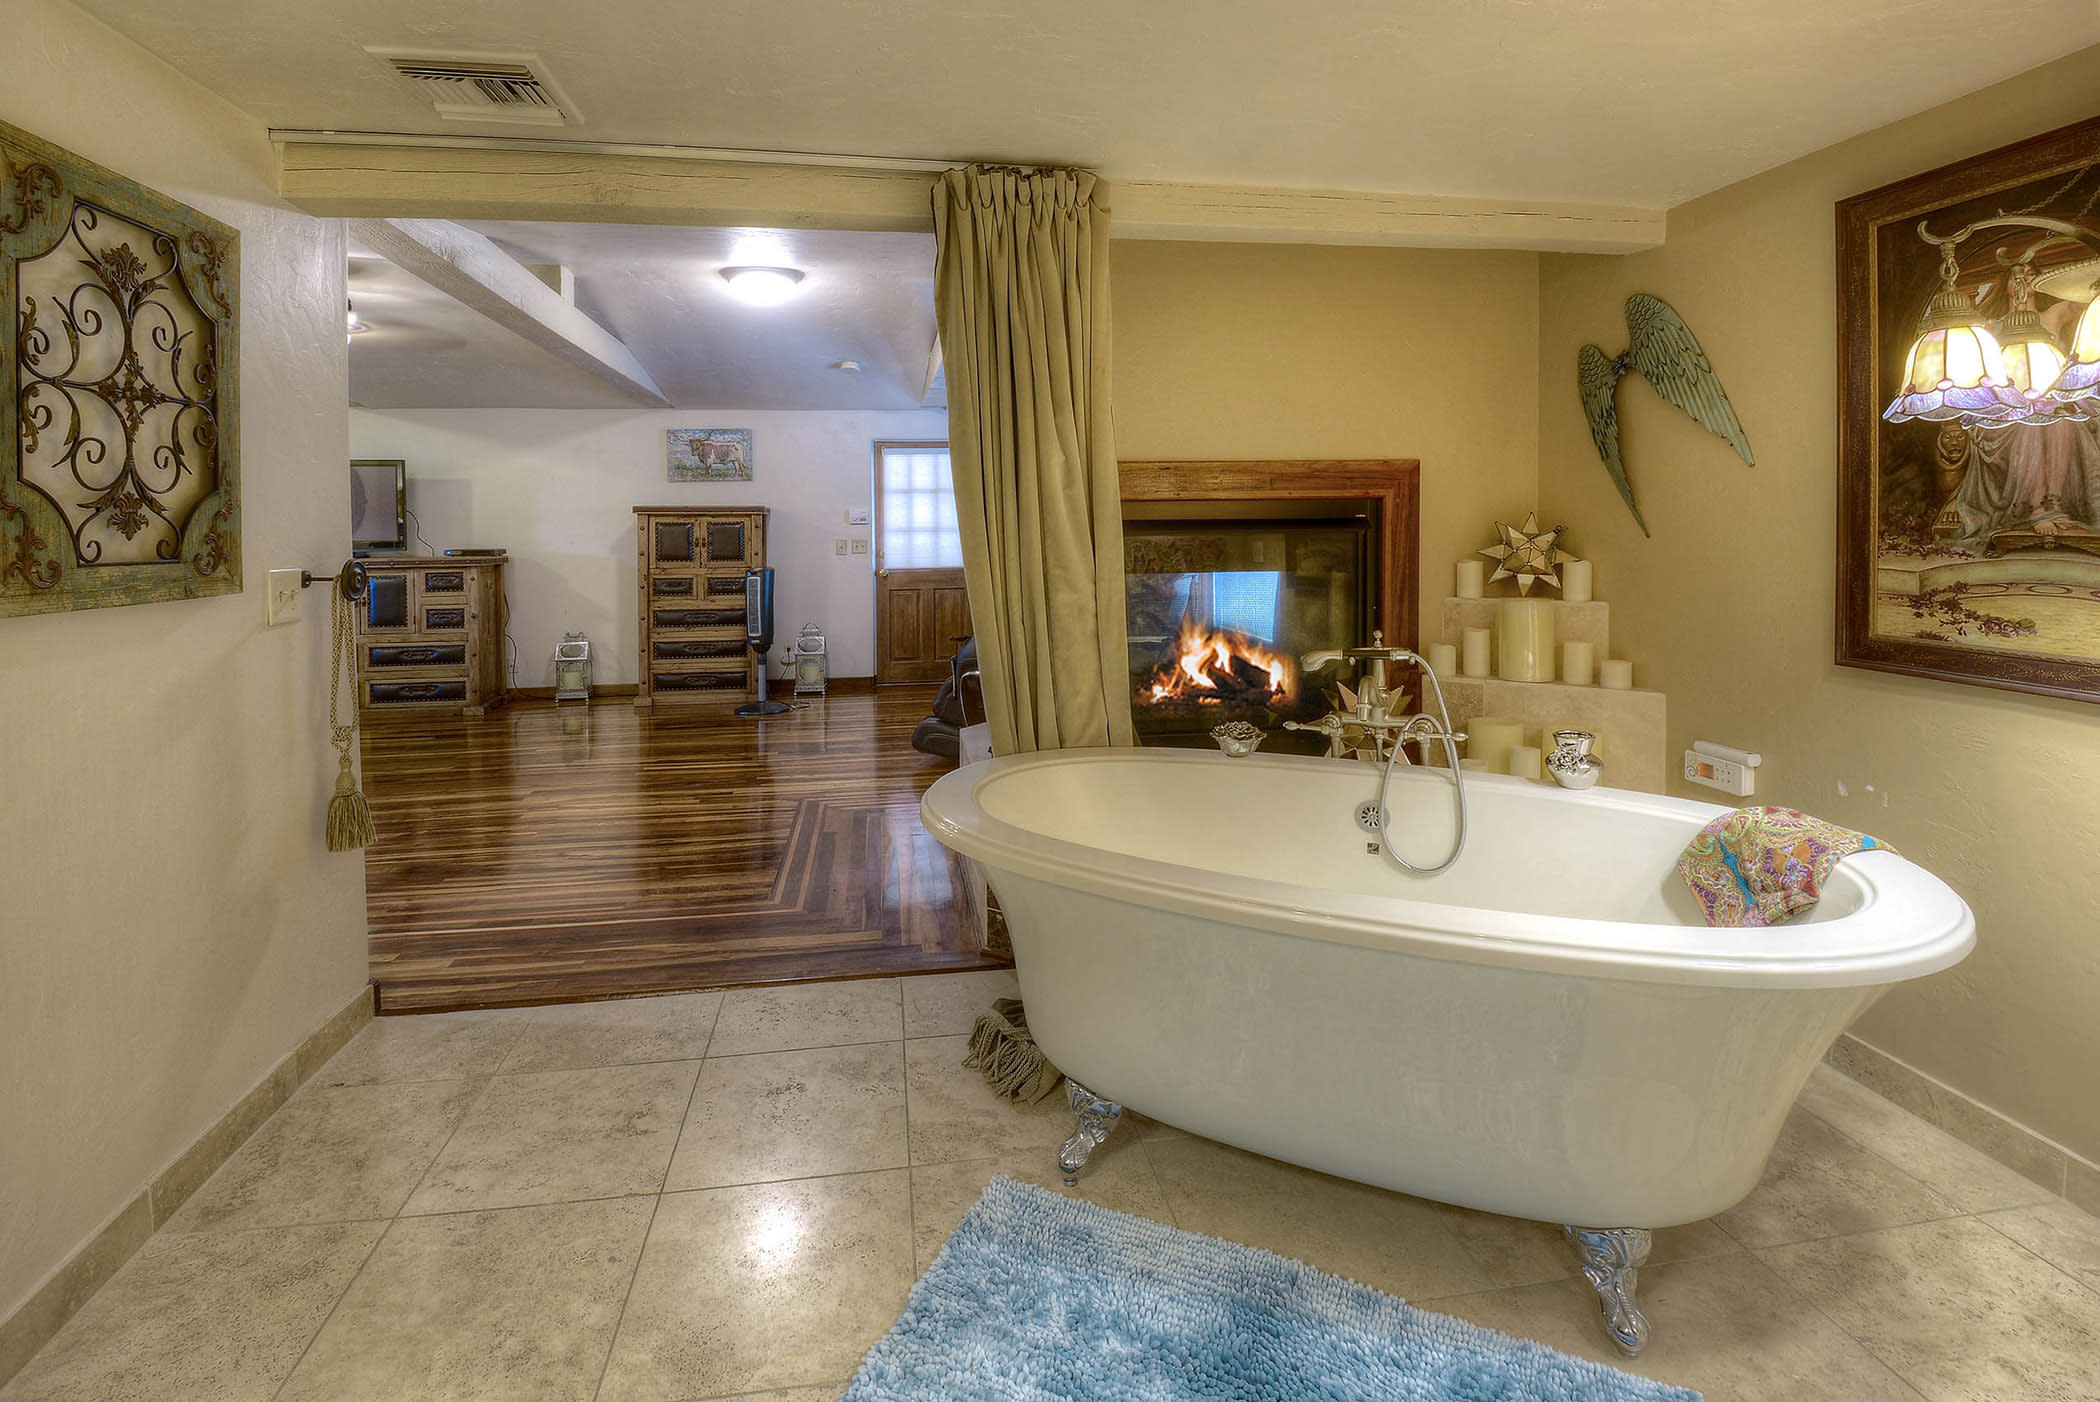 Draw yourself a bubble bath in the clawfoot tub.